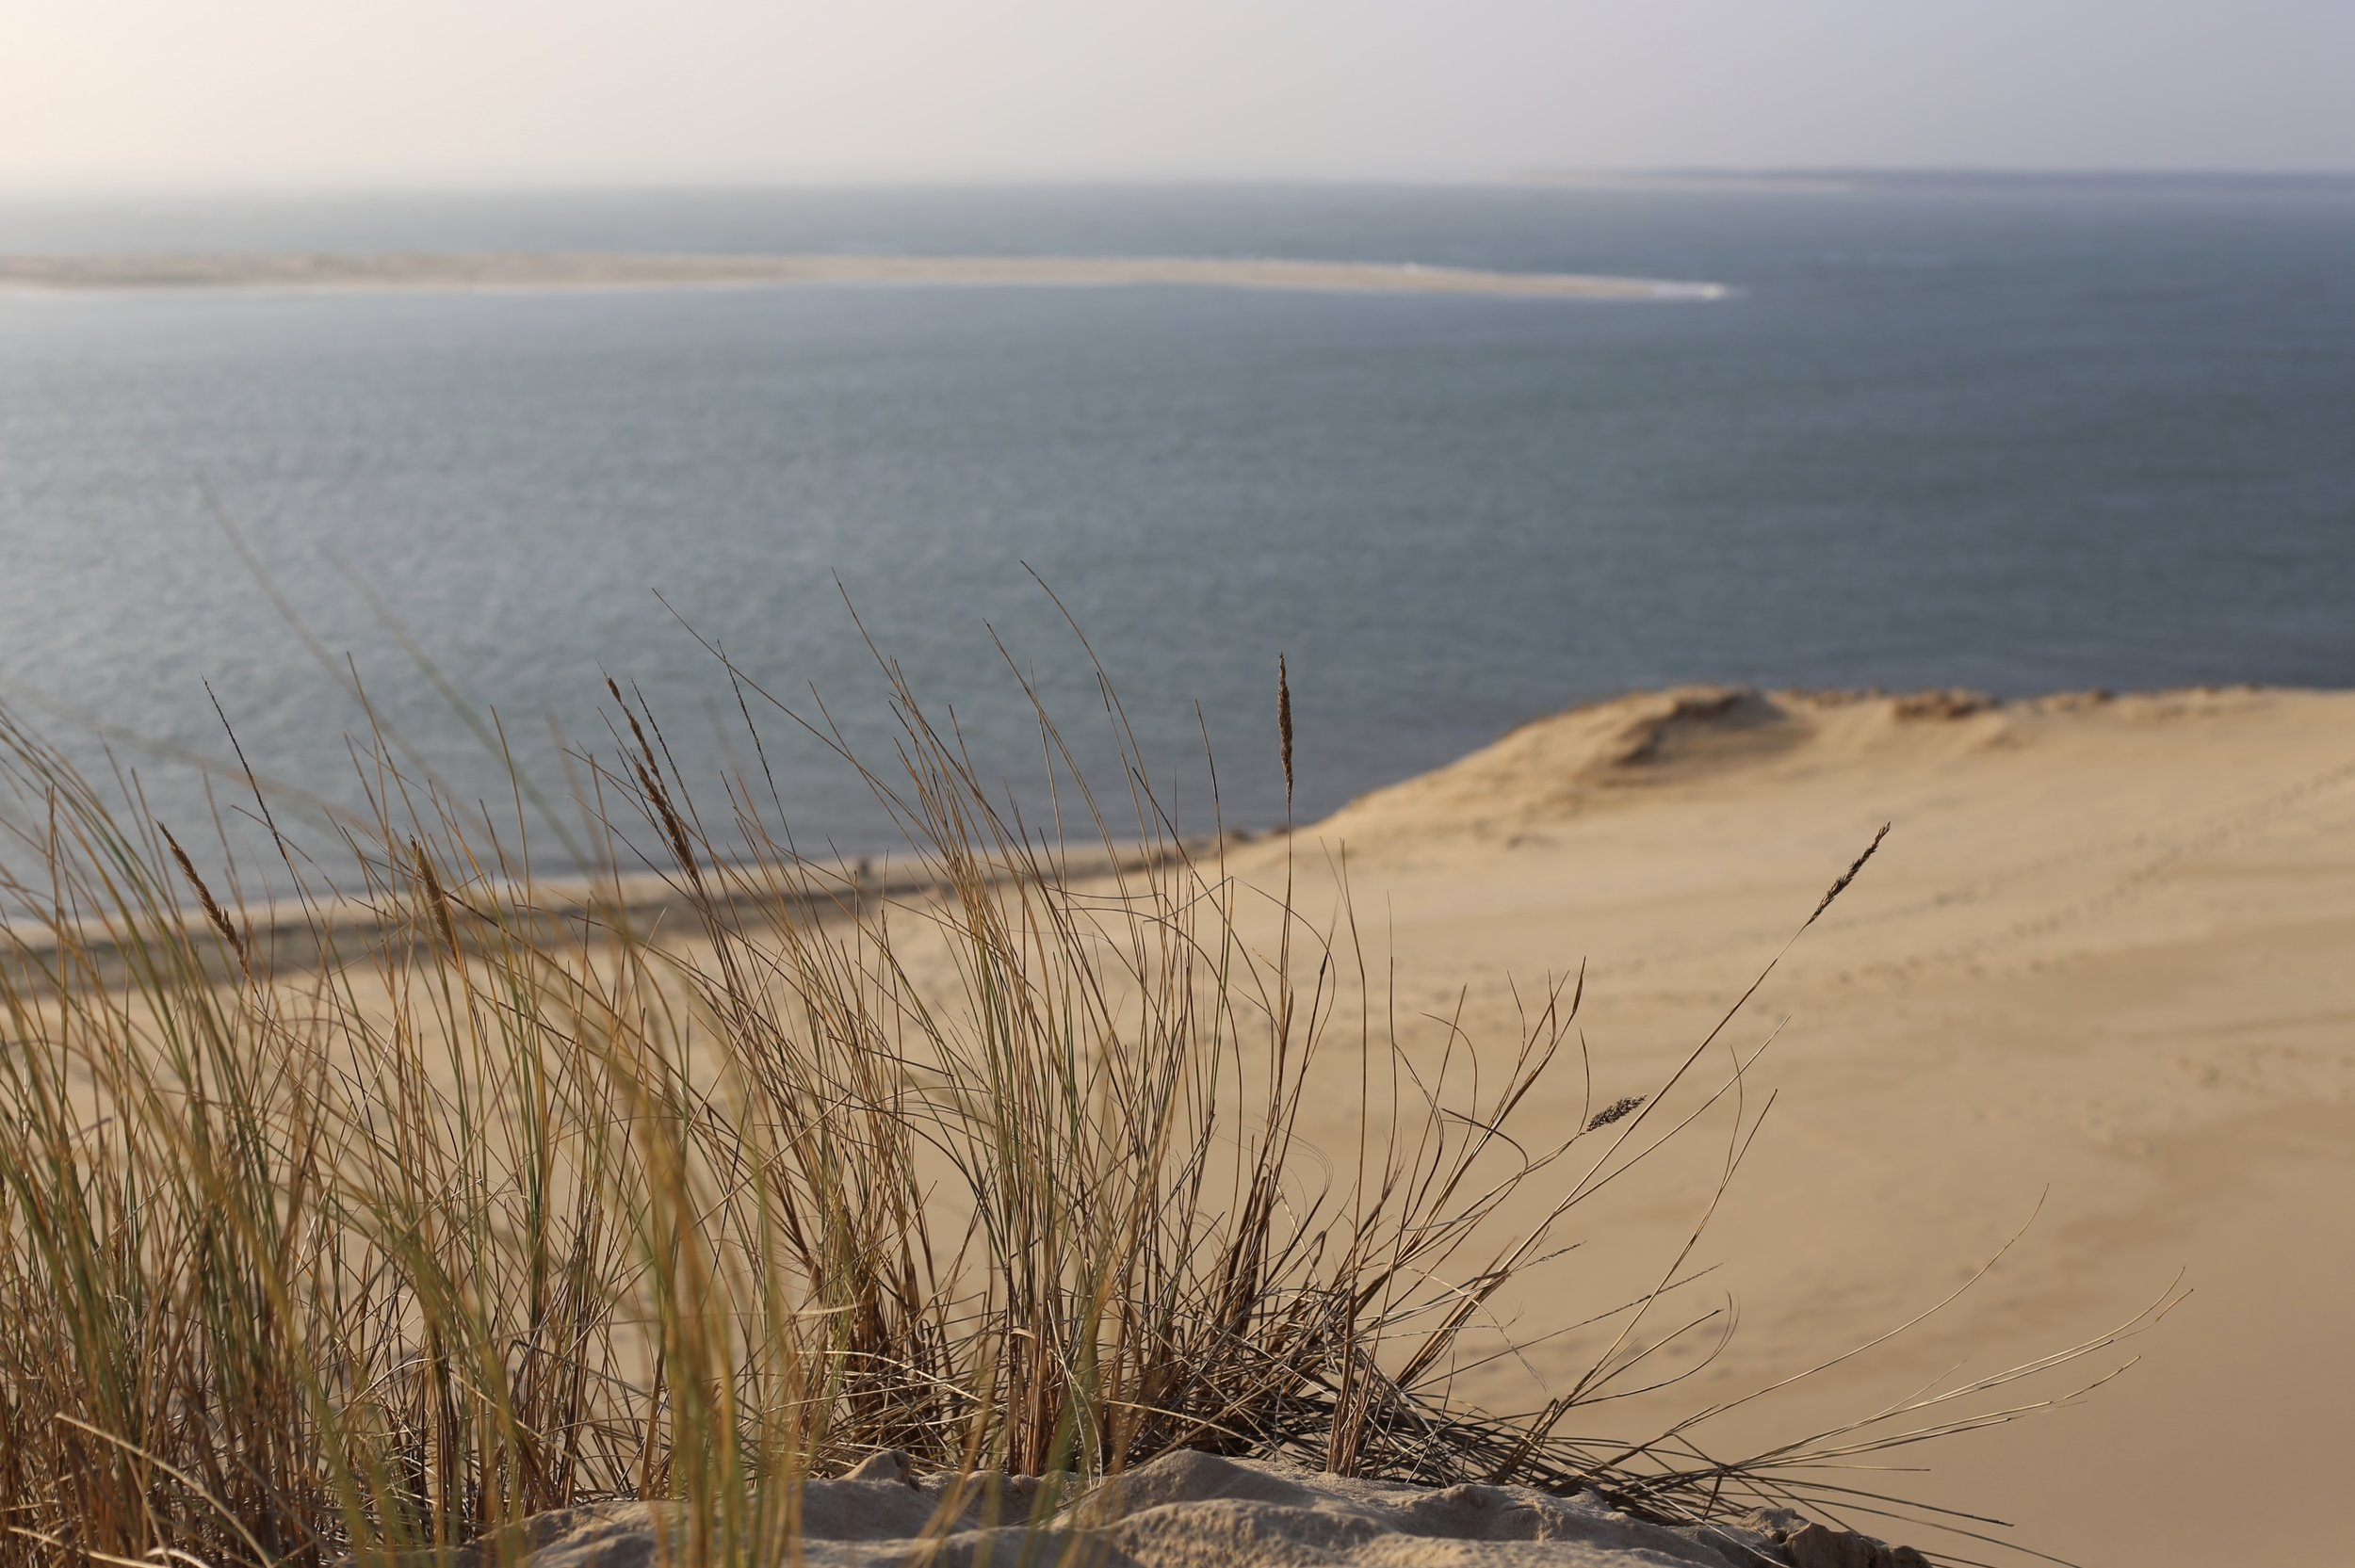 Grasses in the sand dunes, overlooking the sea.